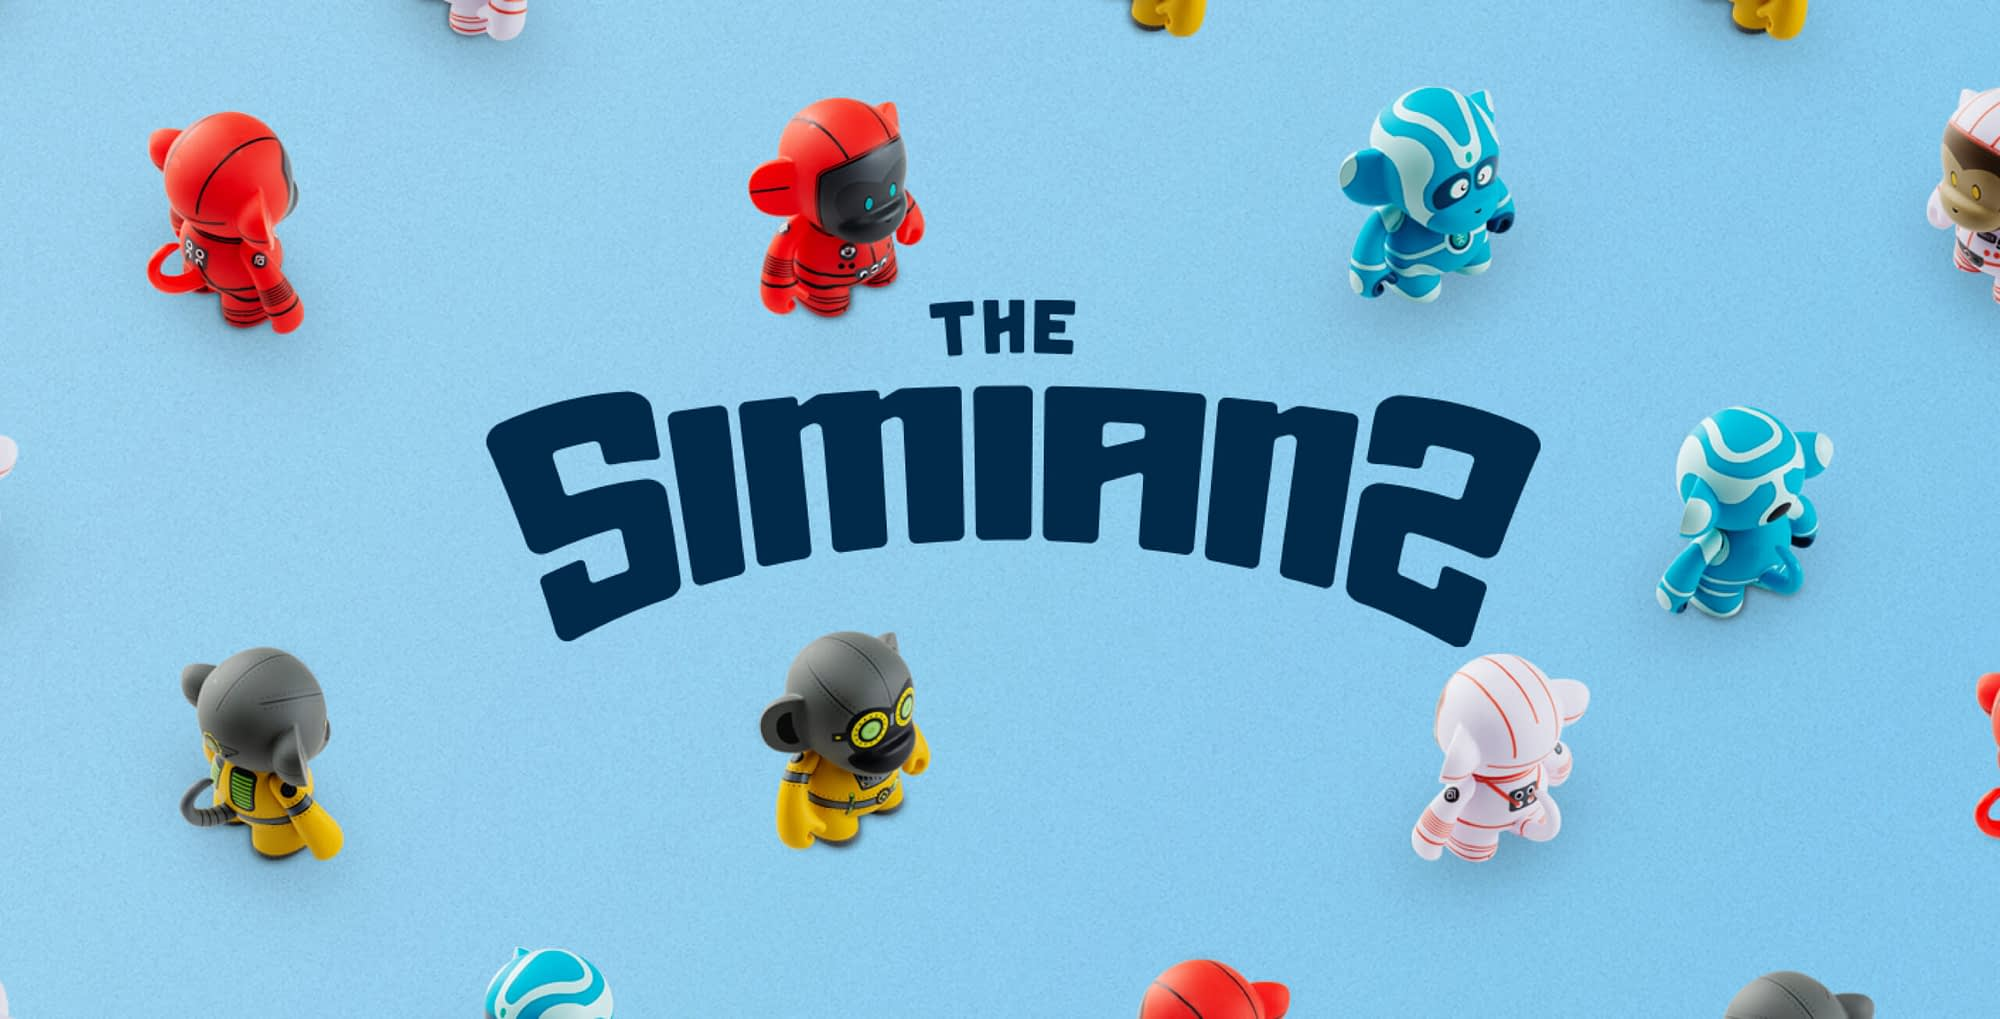 the simians branding